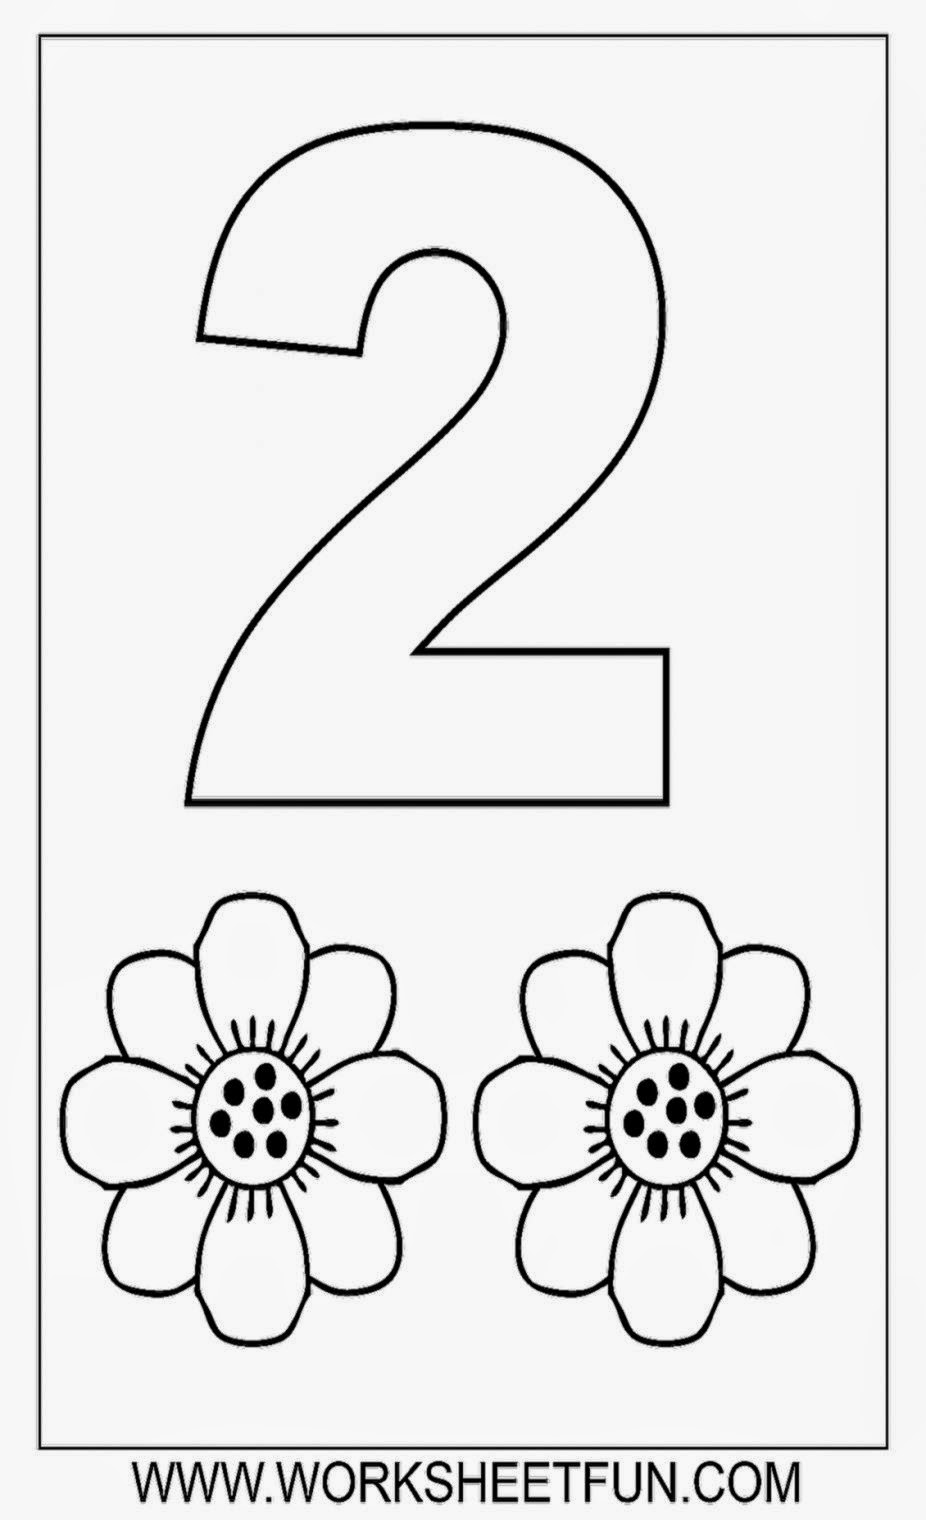 number 2 worksheets for preschoolers printable color by number sheets free coloring sheet 708